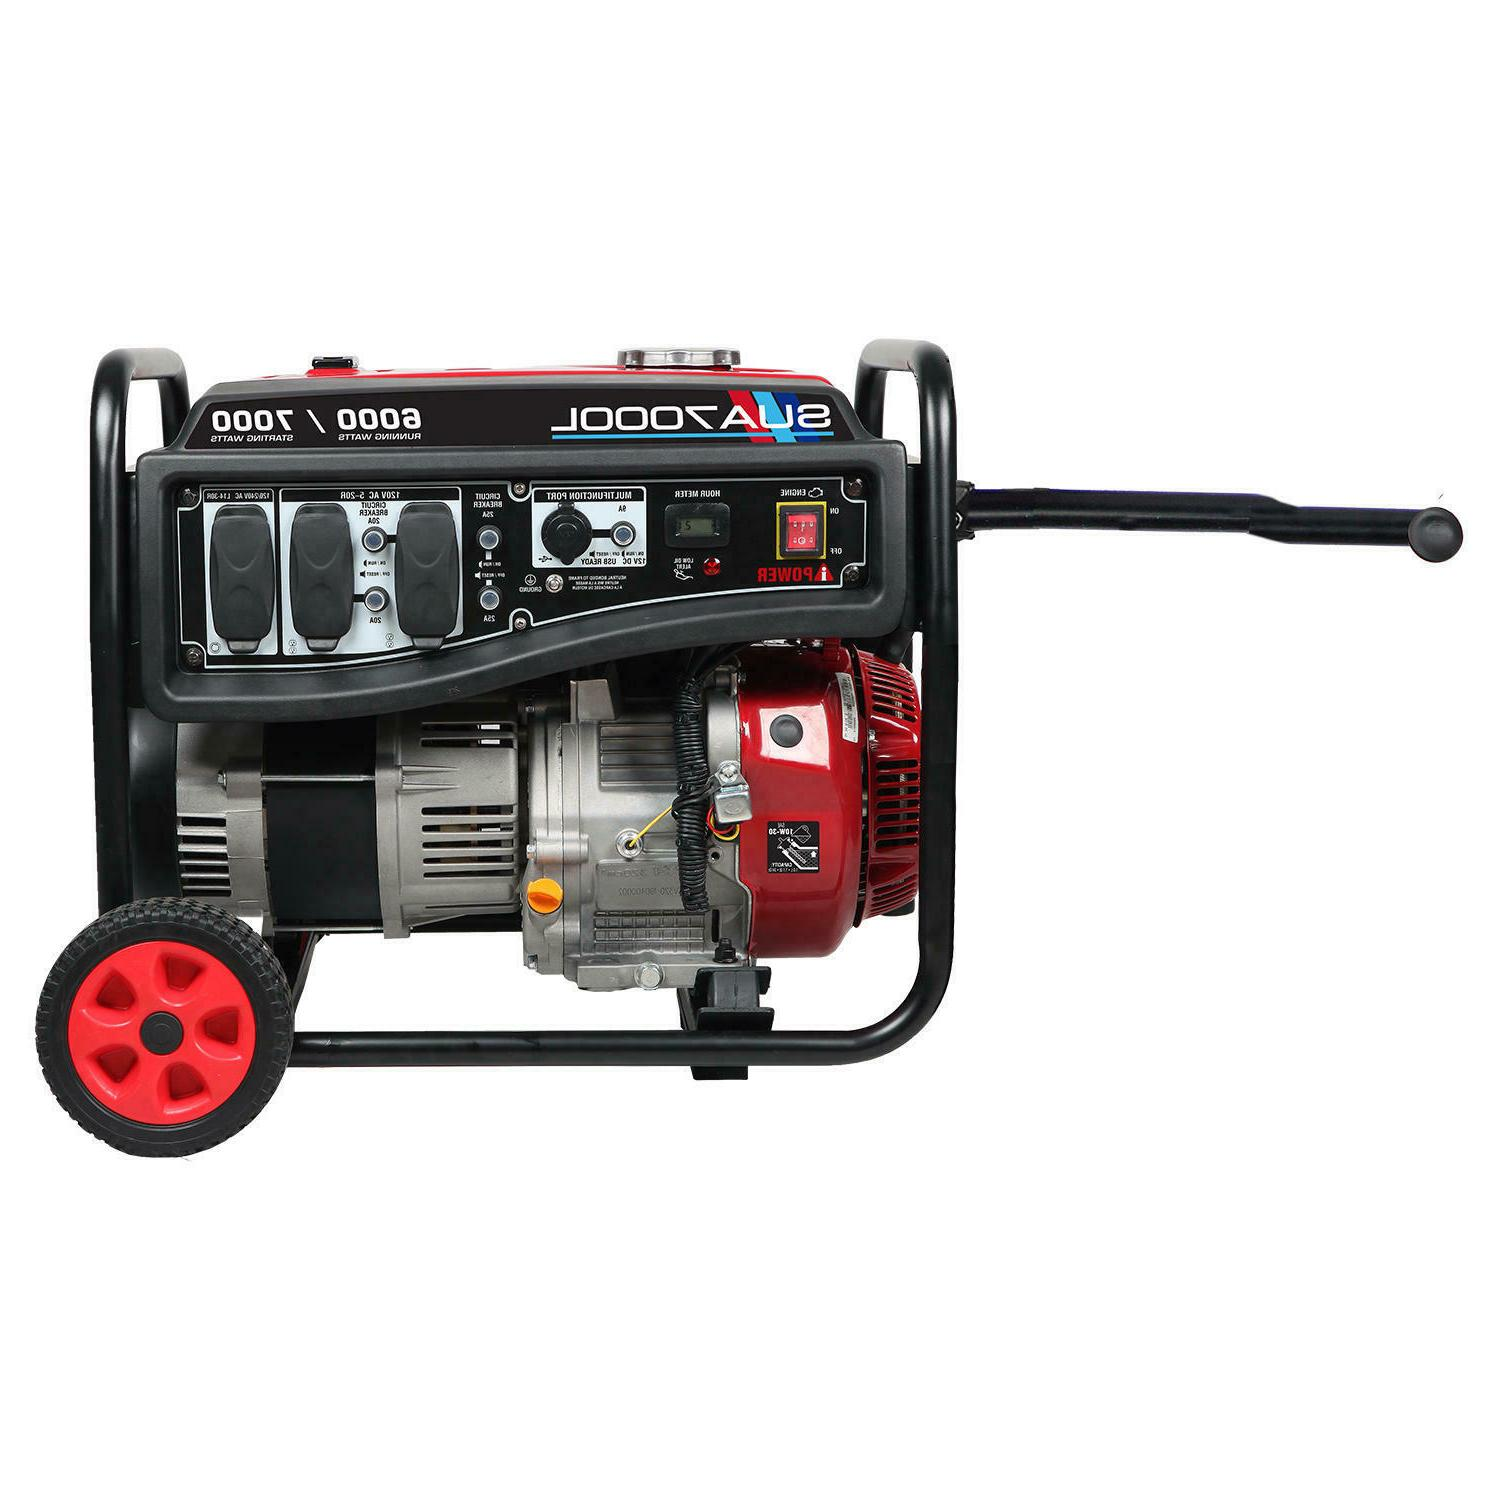 A-iPower 6000/7000 Watt Portable Generator Kit